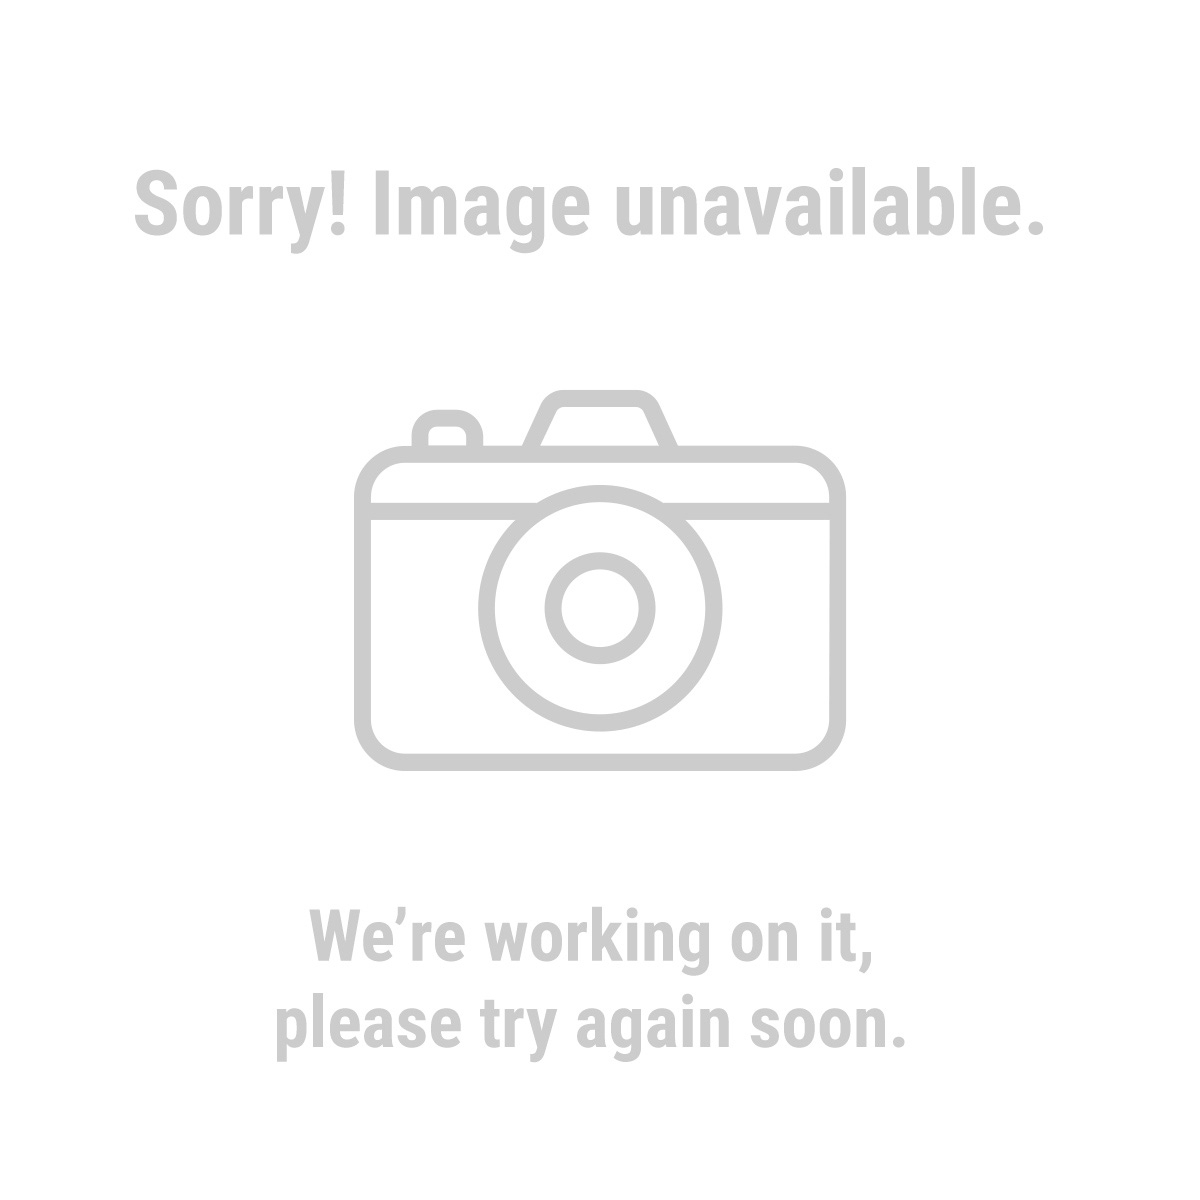 Bunker Hill Security® 95914 Weatherproof Color Security Camera with Night Vision